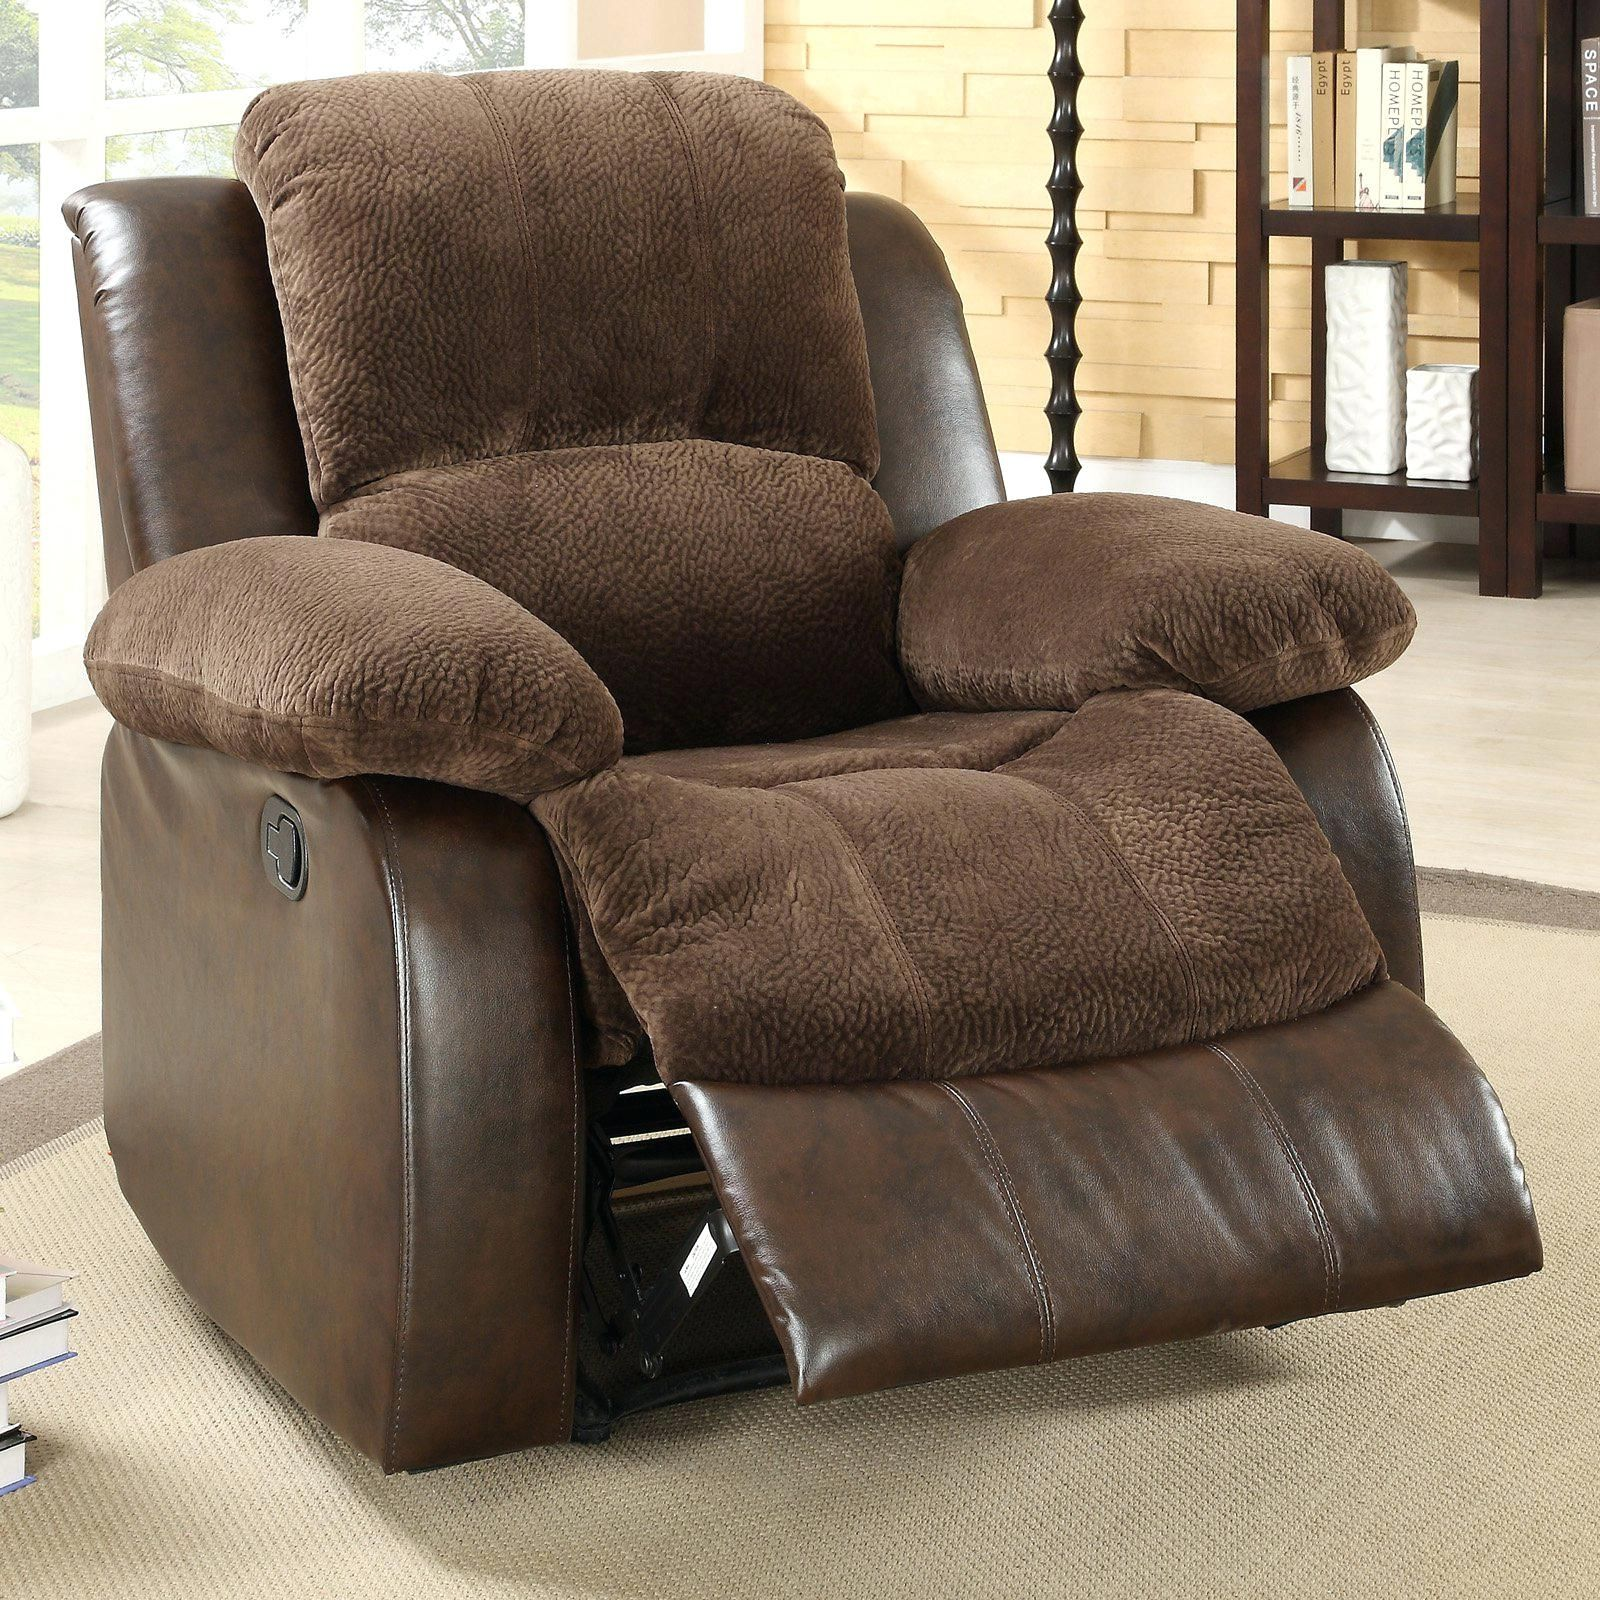 Stressless Chair Arm Covers